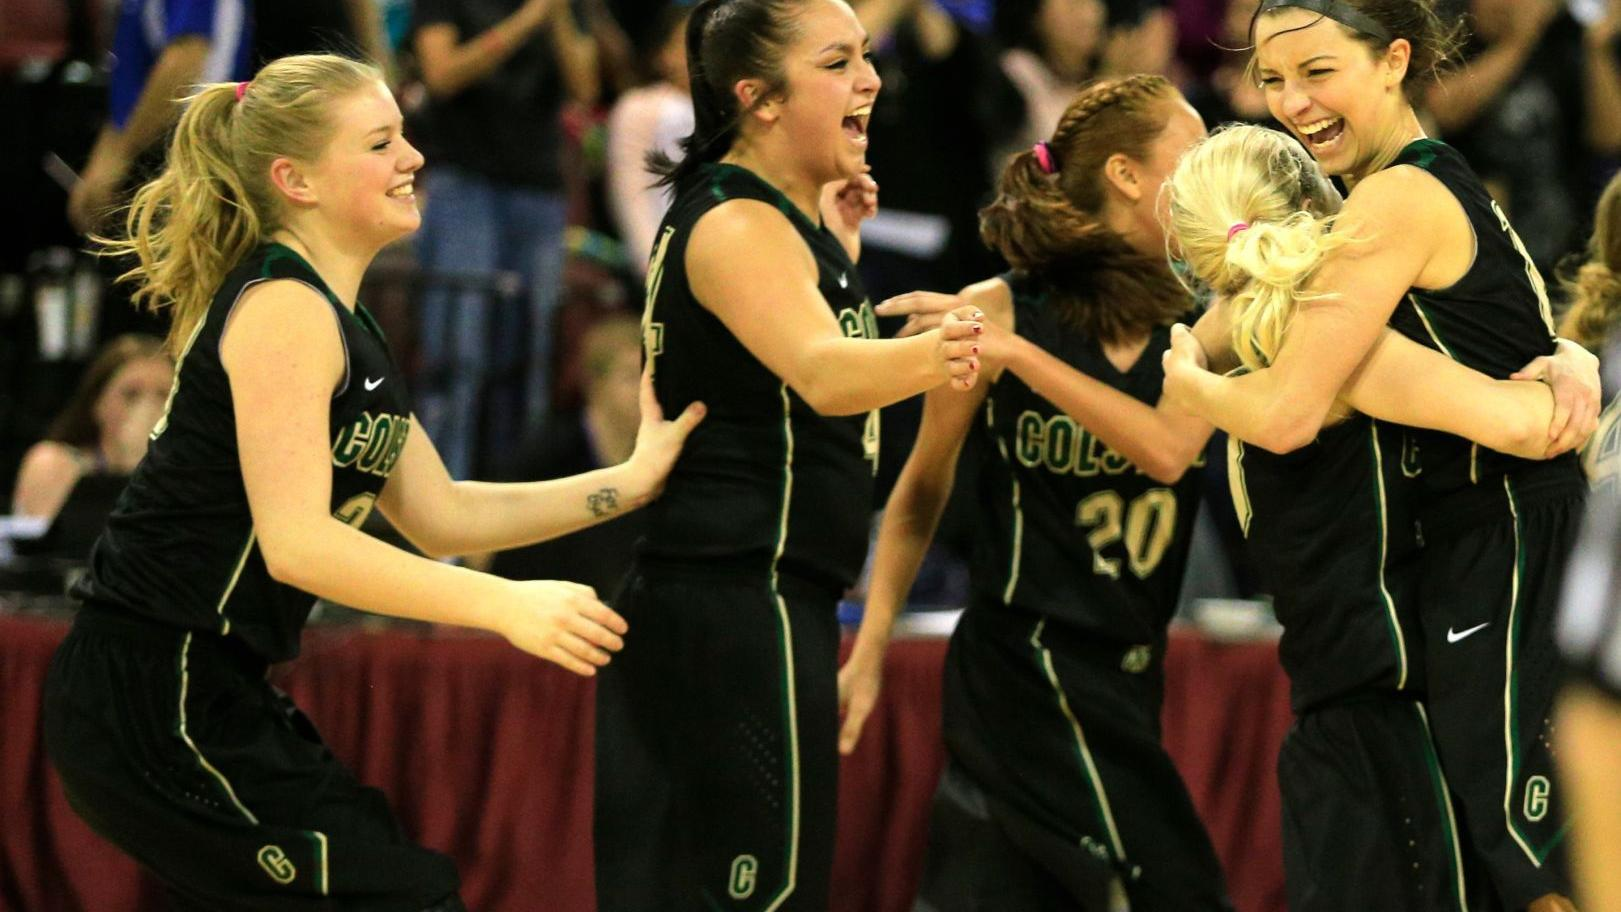 Colstrip nudges Three Forks in final seconds; Red Lodge nabs 1st state tourney berth